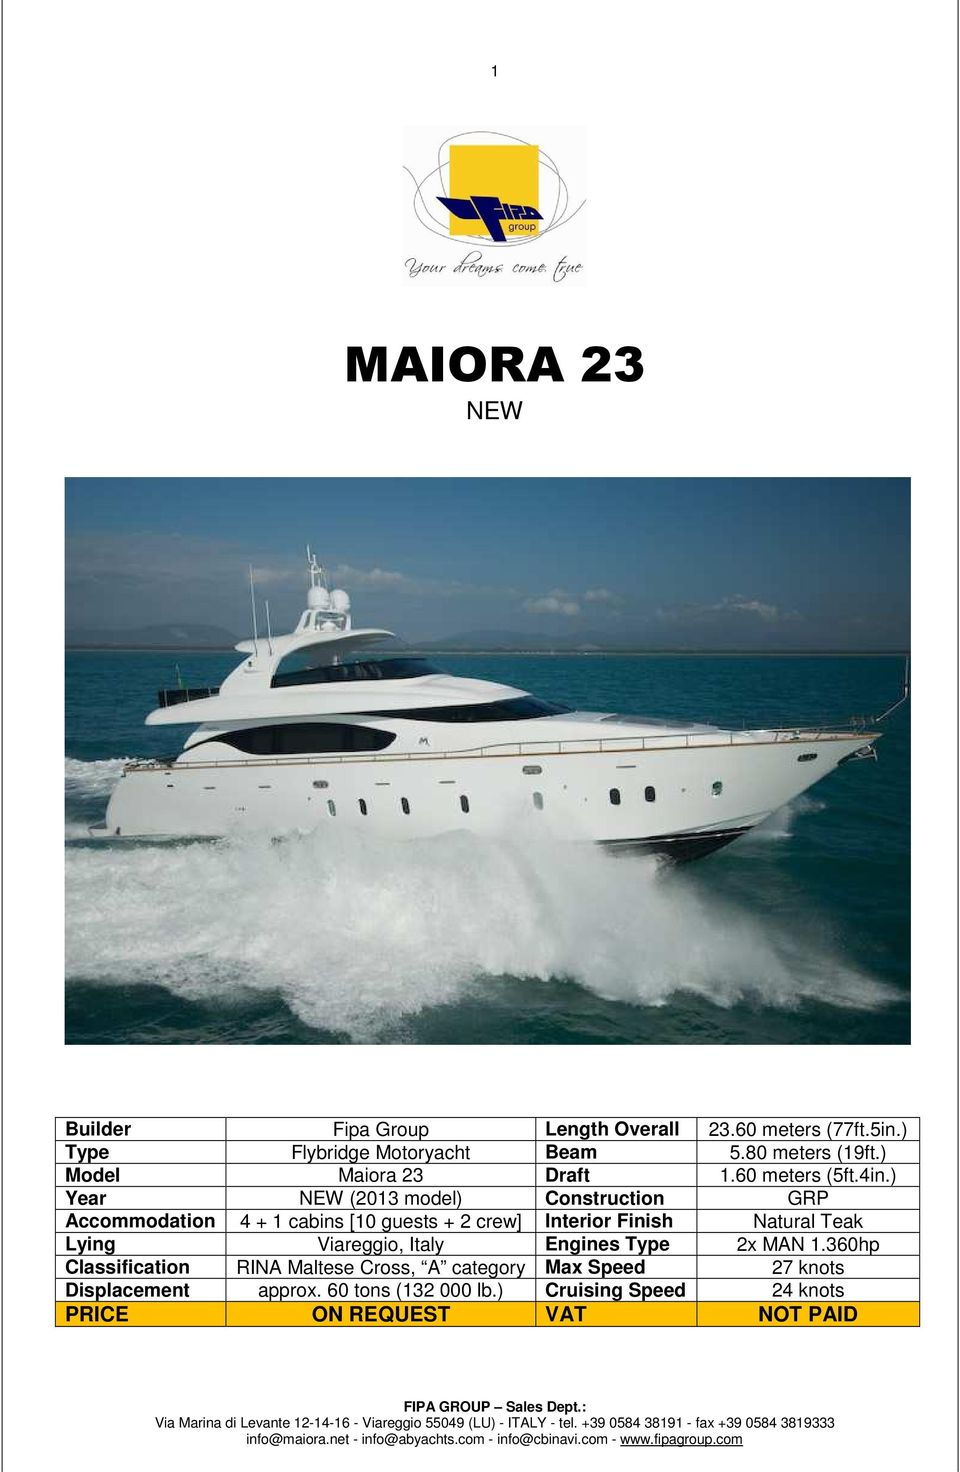 ) Year NEW (2013 model) Construction GRP Accommodation 4 + 1 cabins [10 guests + 2 crew] Interior Finish Natural Teak Lying